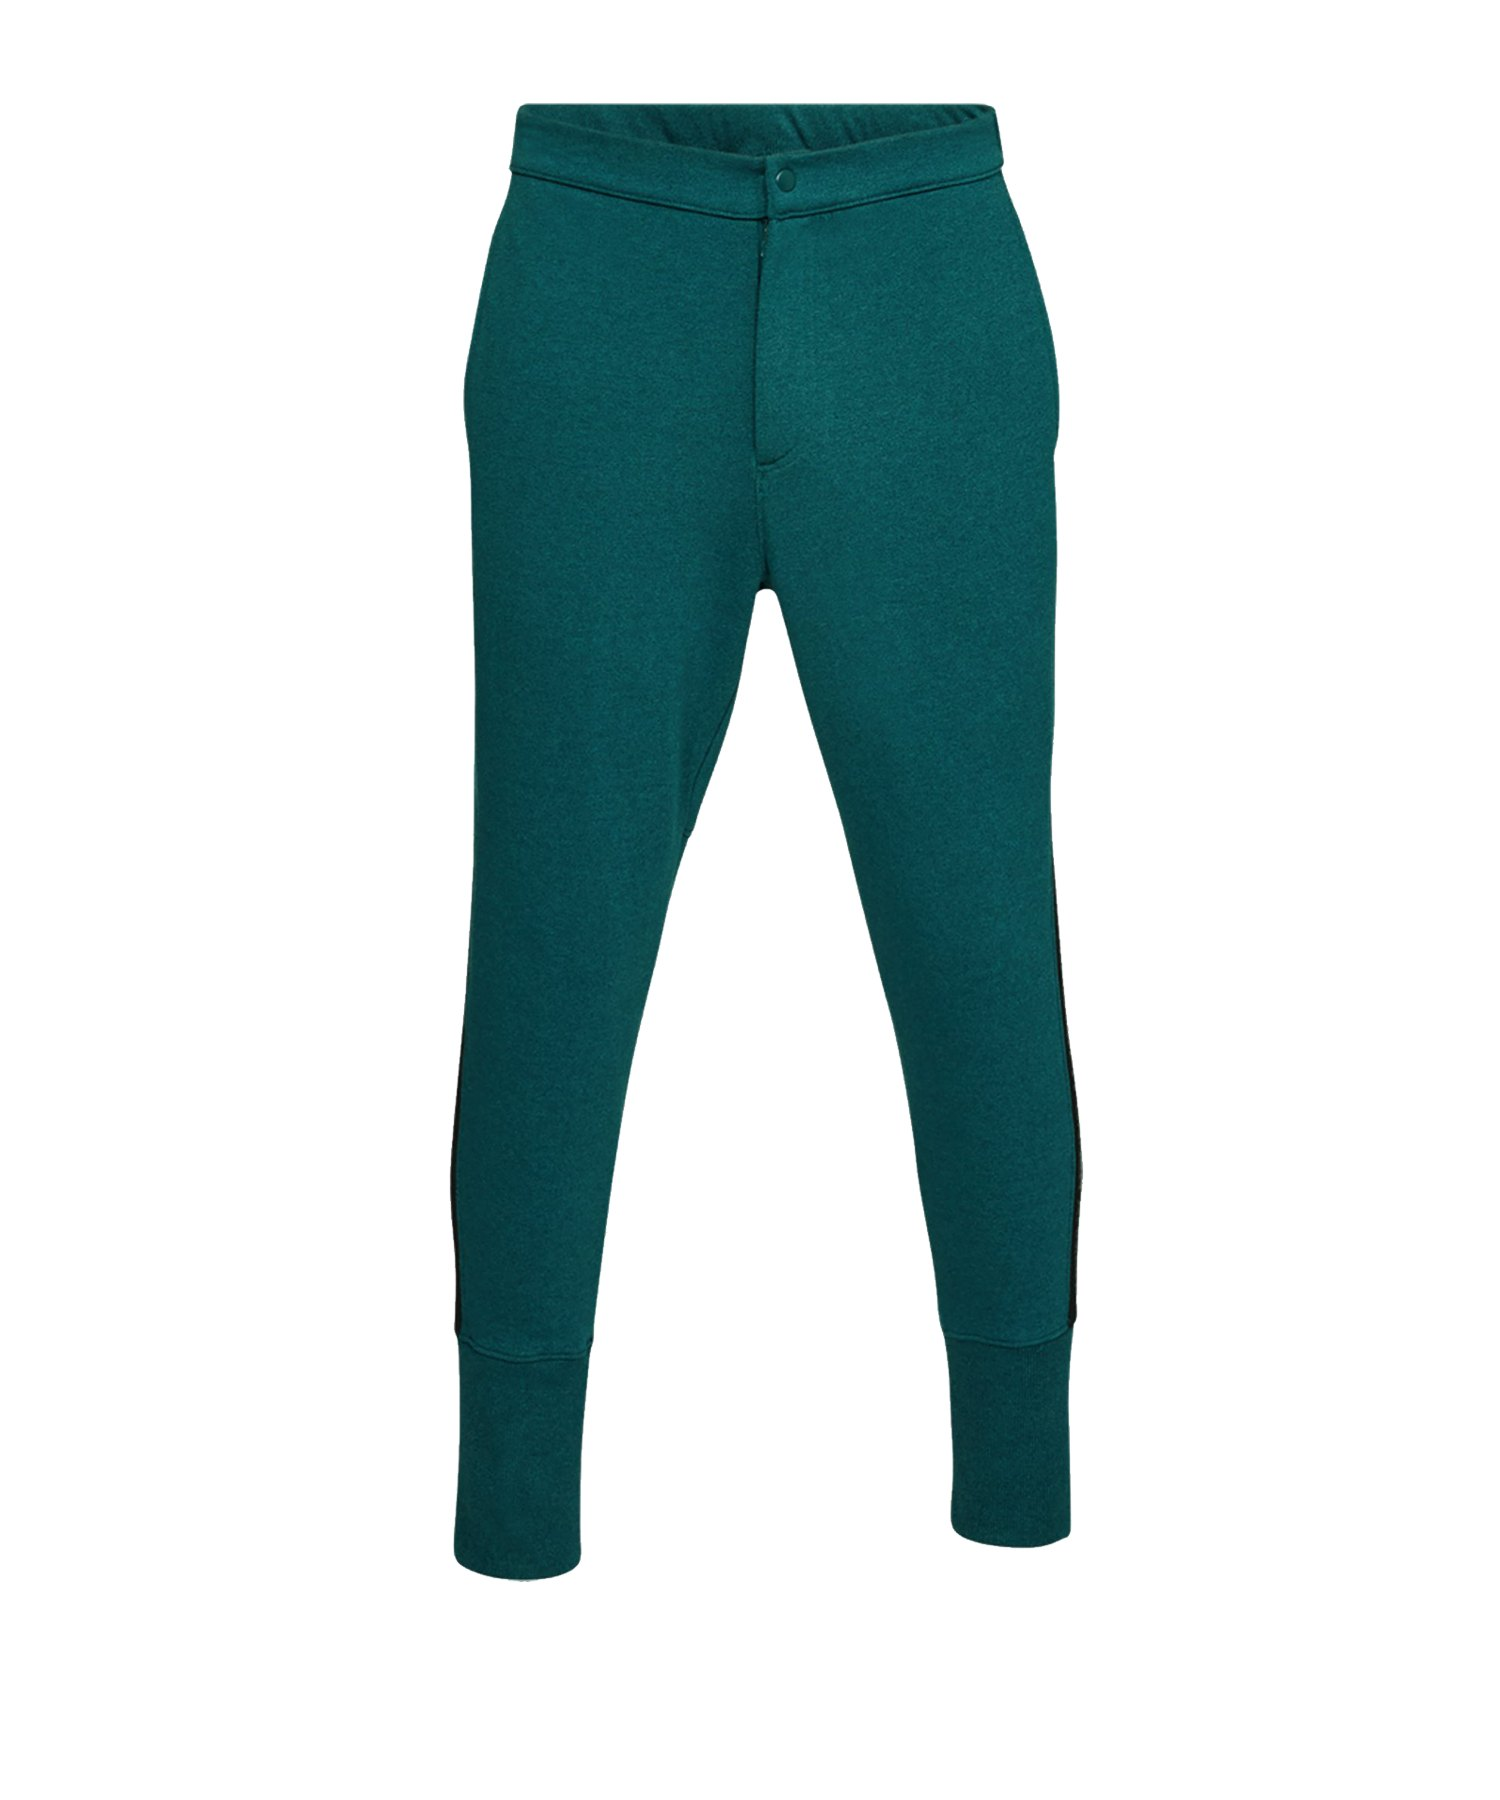 60a388edb Under Armour Accelerate Off-Pitch Pant Grün F366 |Sportzubehör ...